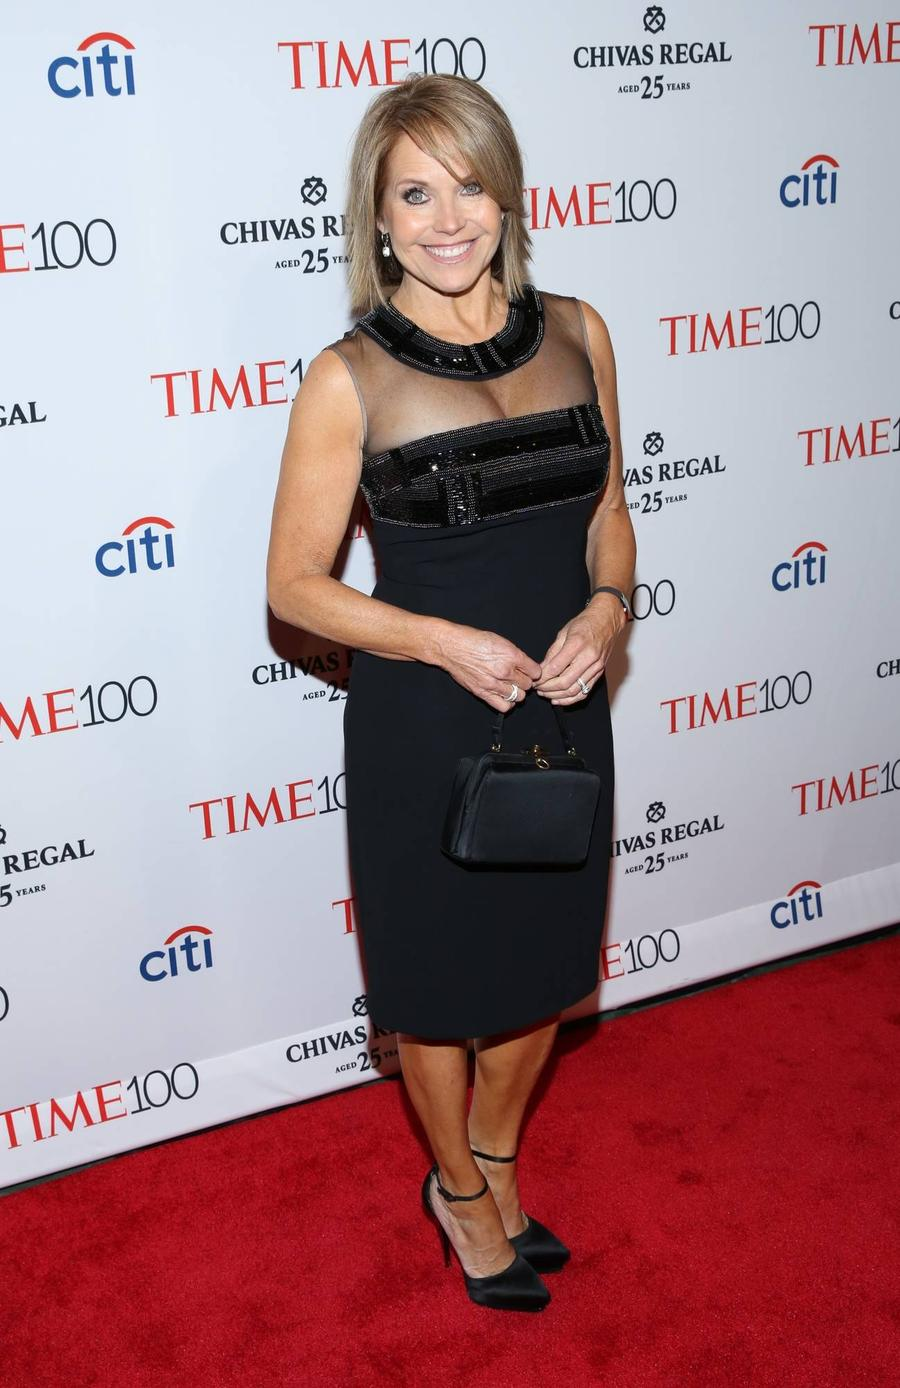 Katie Couric Apologises For 'Misleading' Editing On Anti-gun Doc